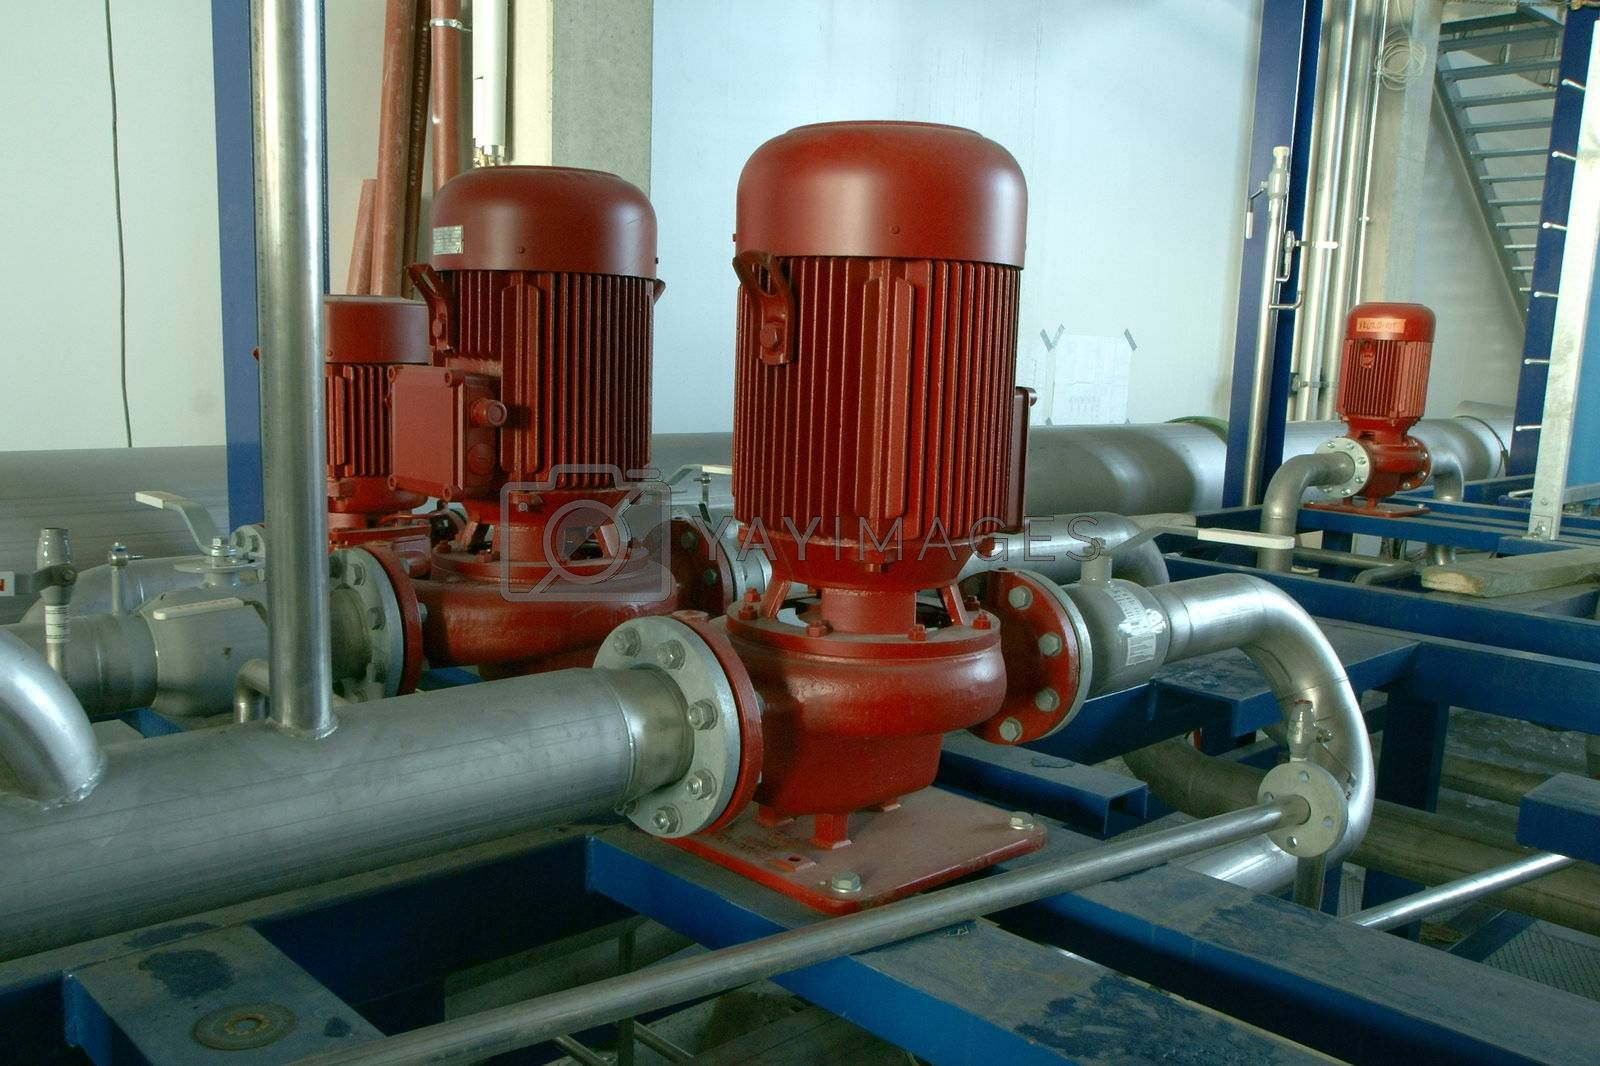 Industrial zone, Steel pipelines and pumps at factory